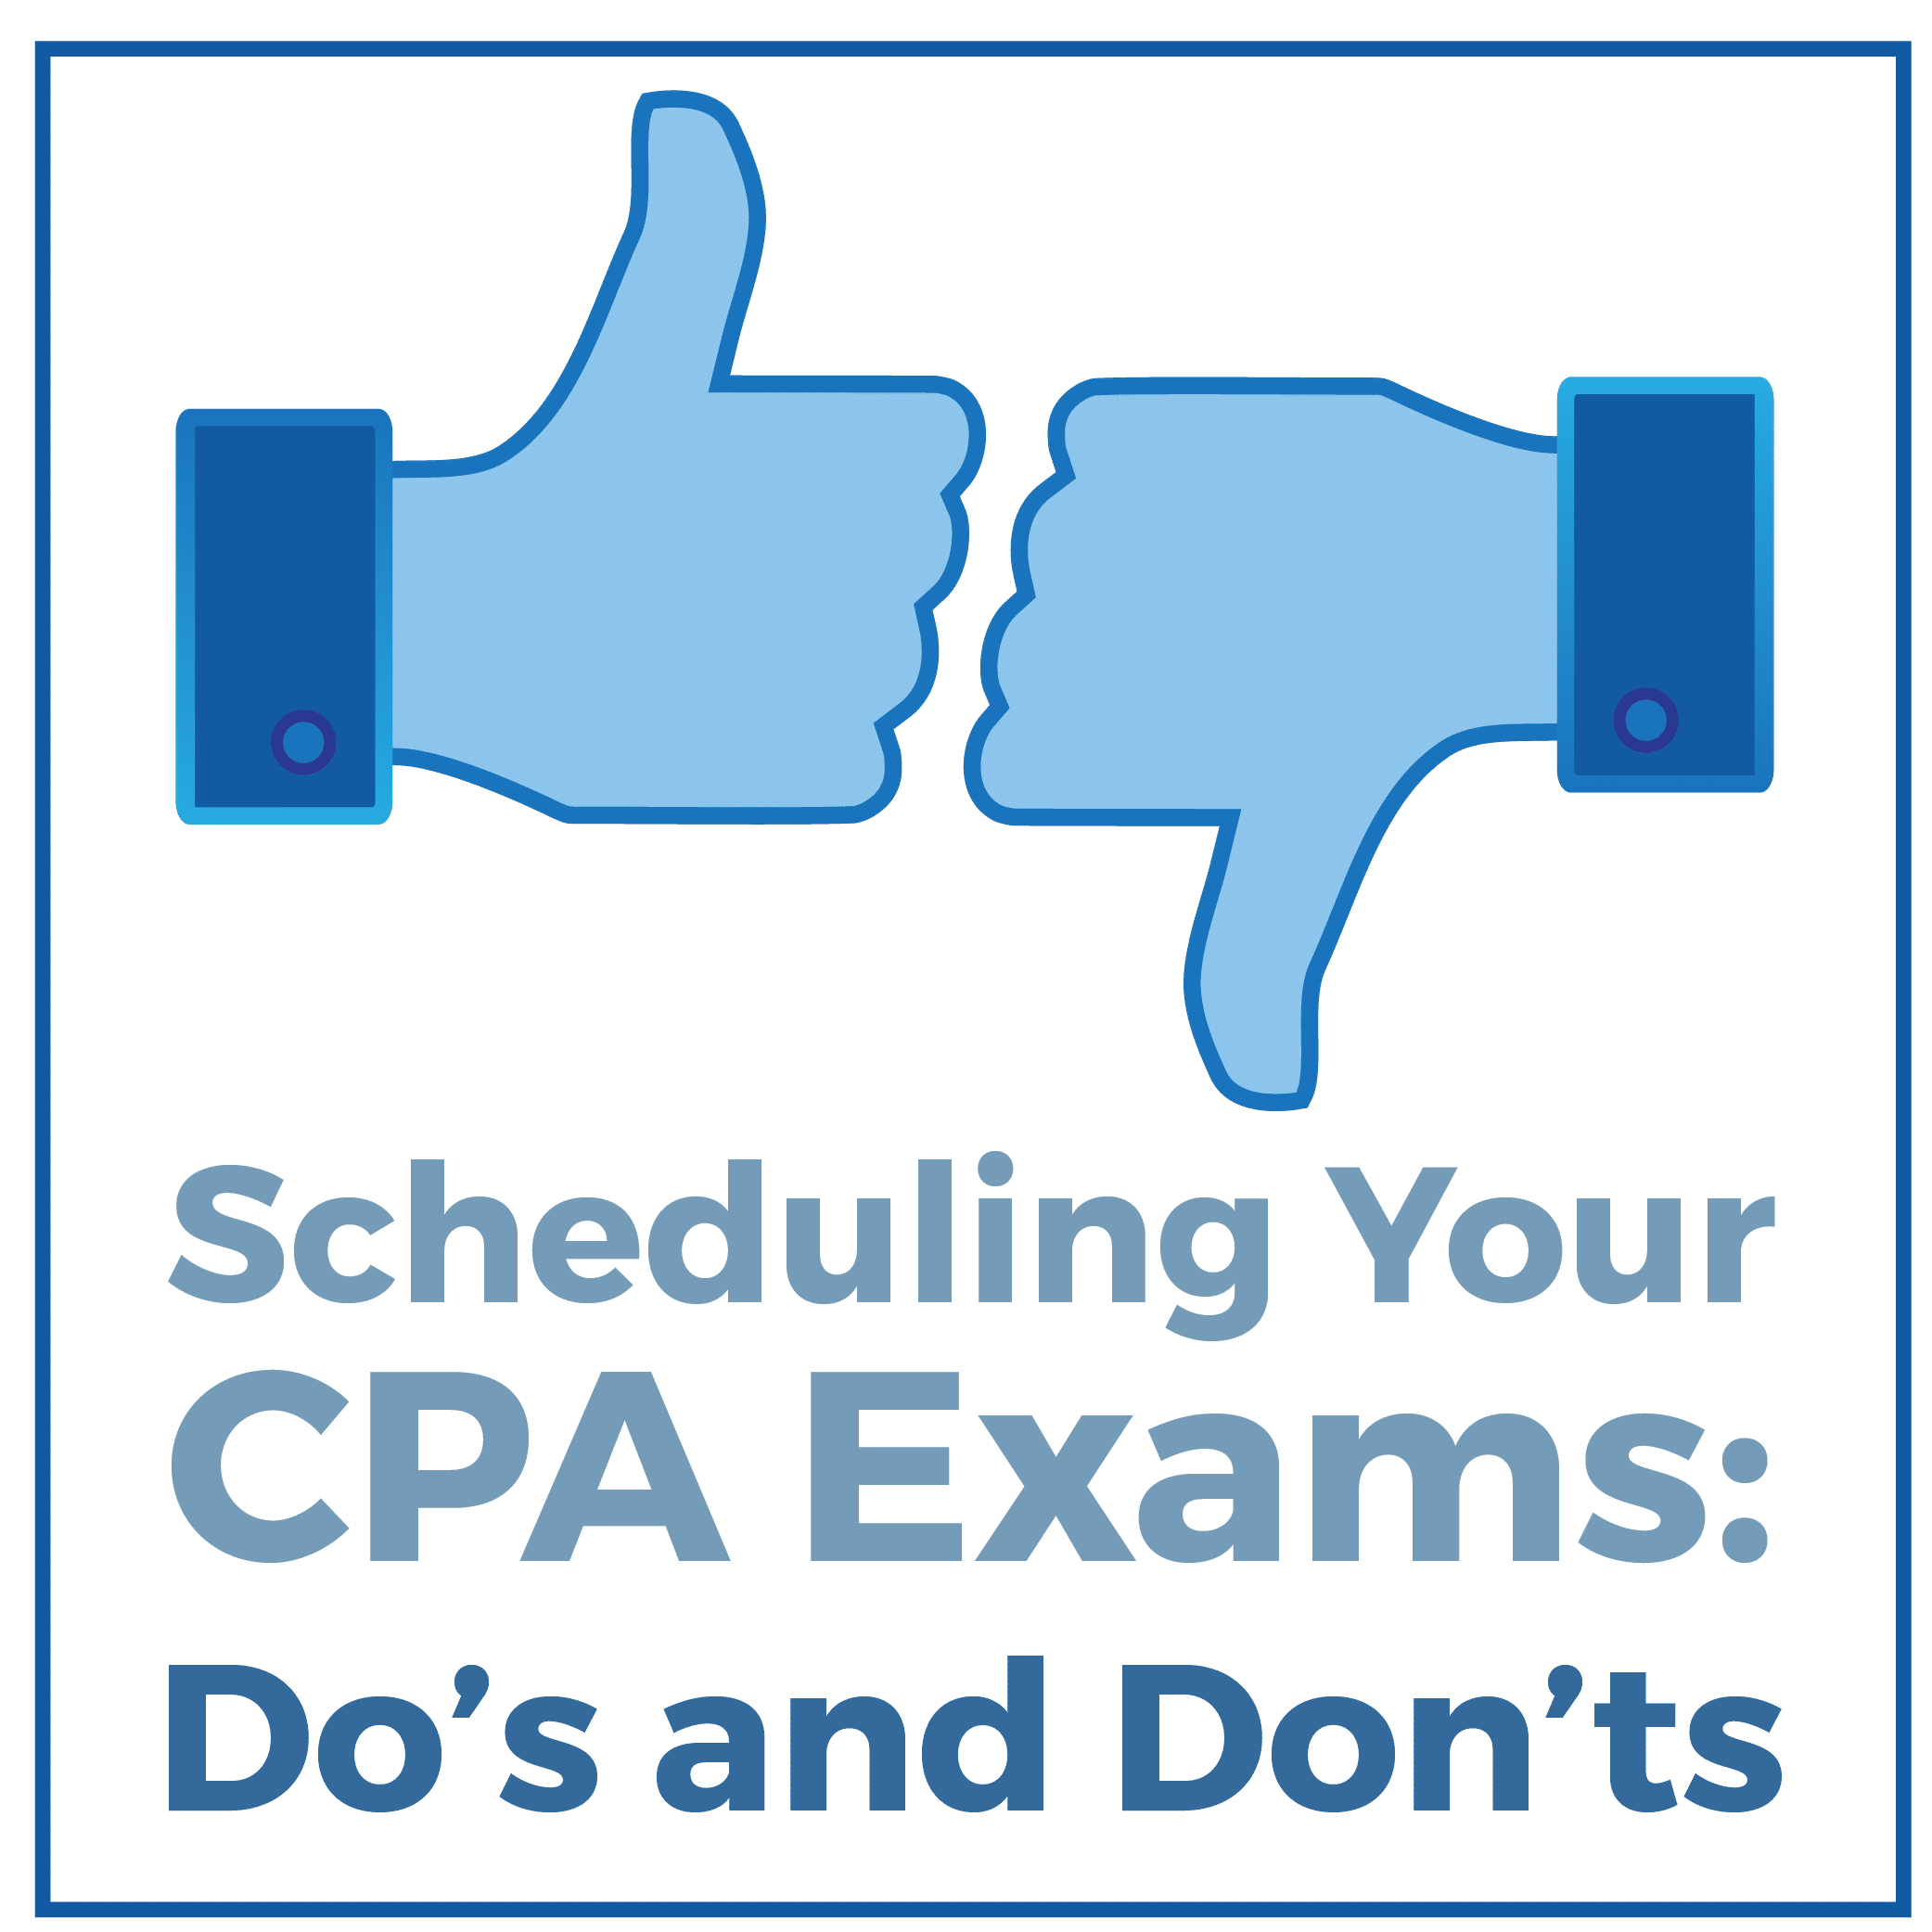 Scheduling Your CPA Exams: Do's and Don'ts